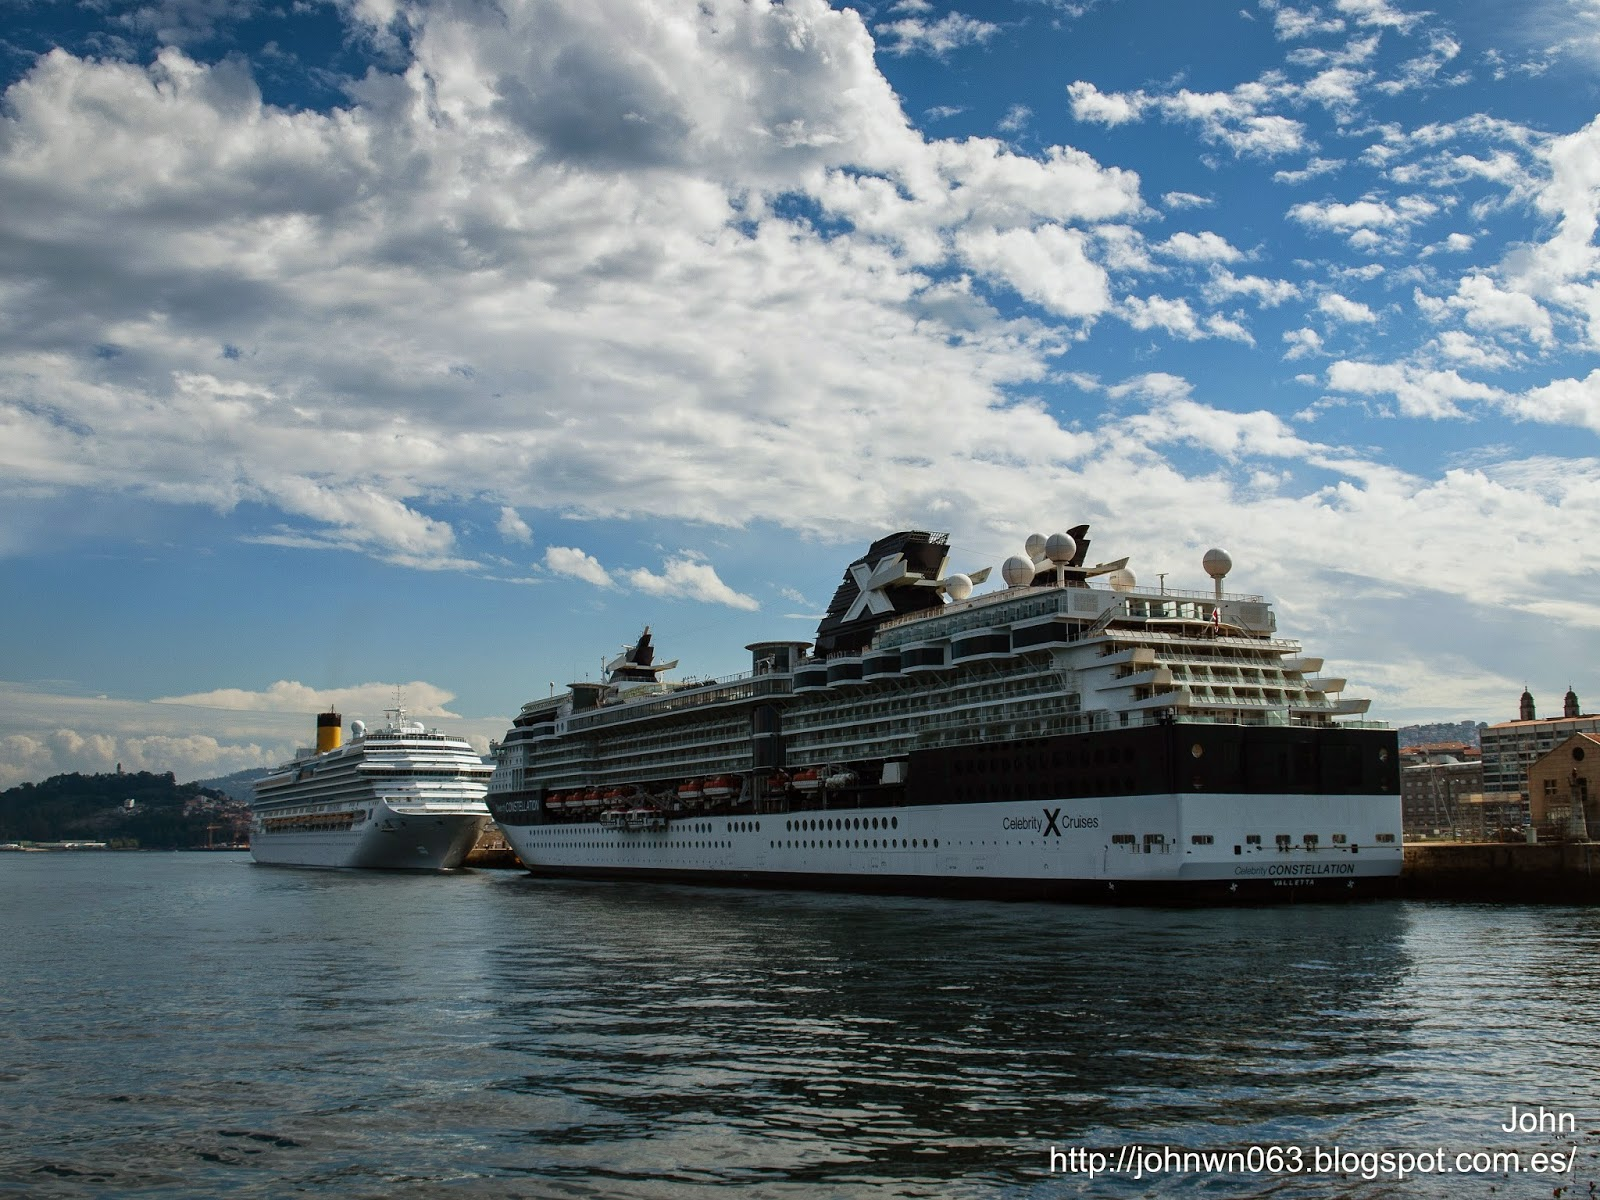 fotos de barcos, imagenes de barcos, celebrity cruise lines, celebrity constellation, vigo